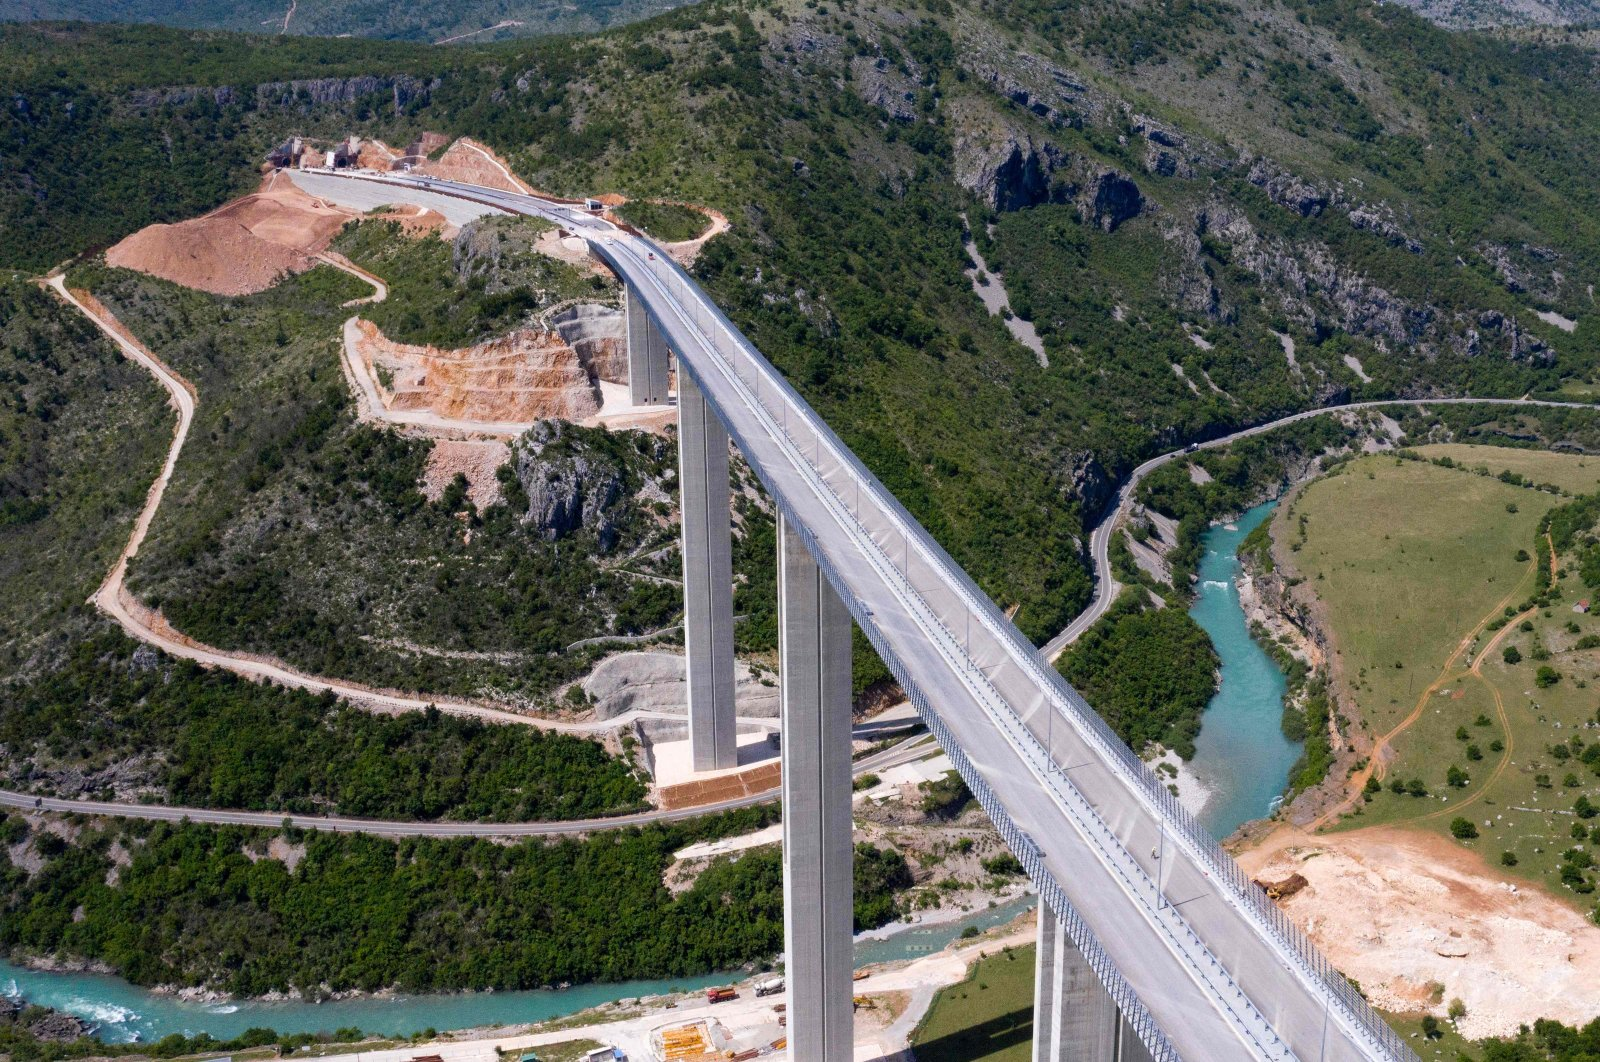 An aerial view shows a part of the new highway connecting the city of Bar on Montenegro's Adriatic coast to landlocked neighbor Serbia, which is being constructed by China Road and Bridge Corporation (CRBC), the large state-owned Chinese company, near Matesevo, Montenegro, May 11, 2021. (AFP Photo)